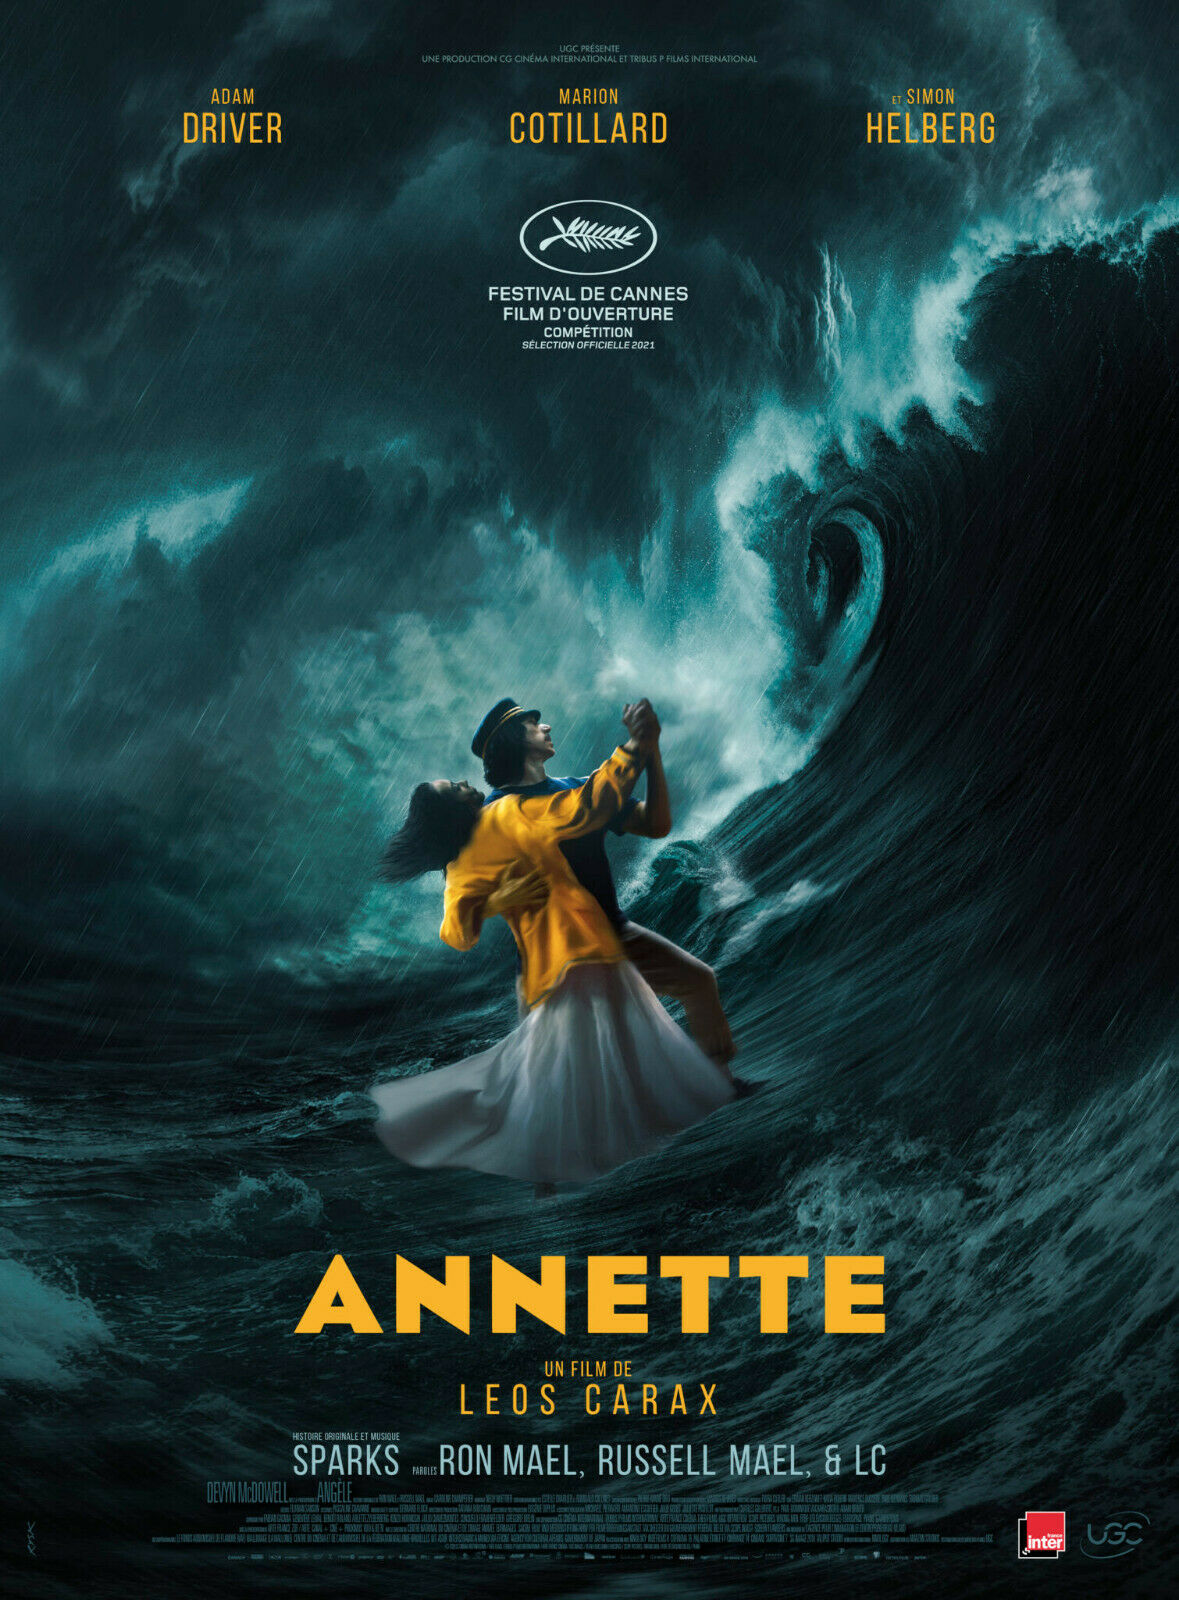 Annette (2021) * – Seen at theCinema